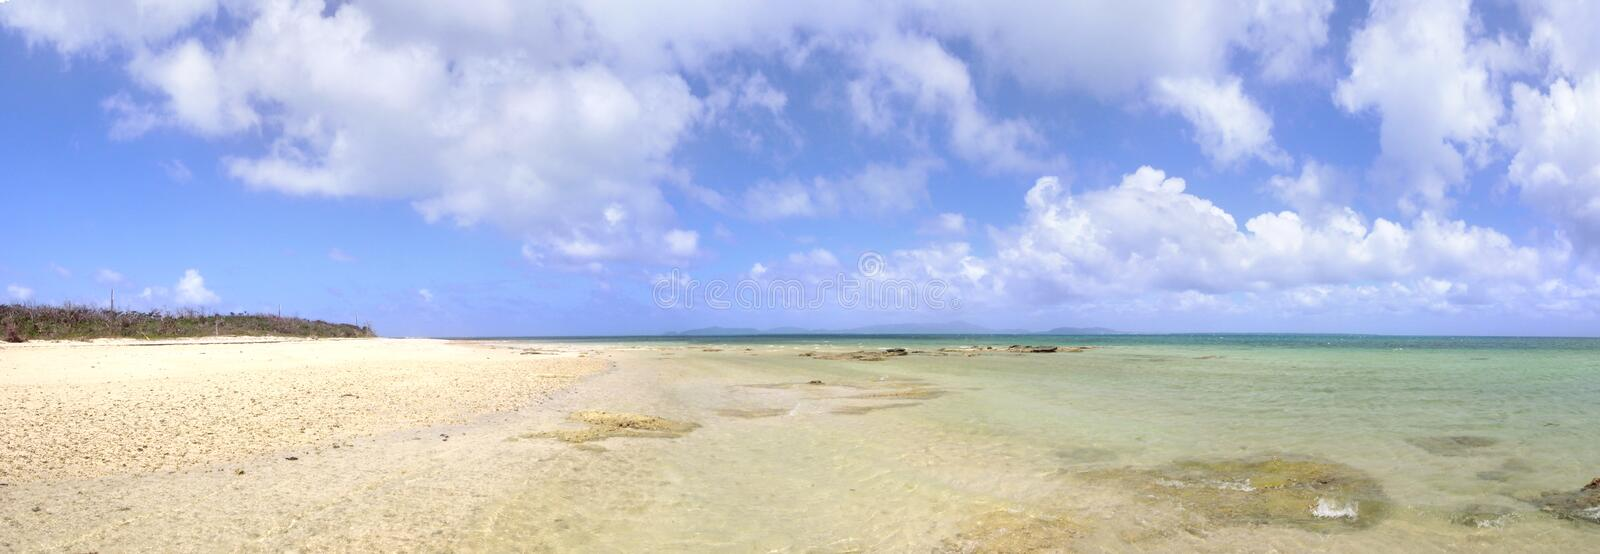 Clear water beach of Okinawa island in Japan. stock images